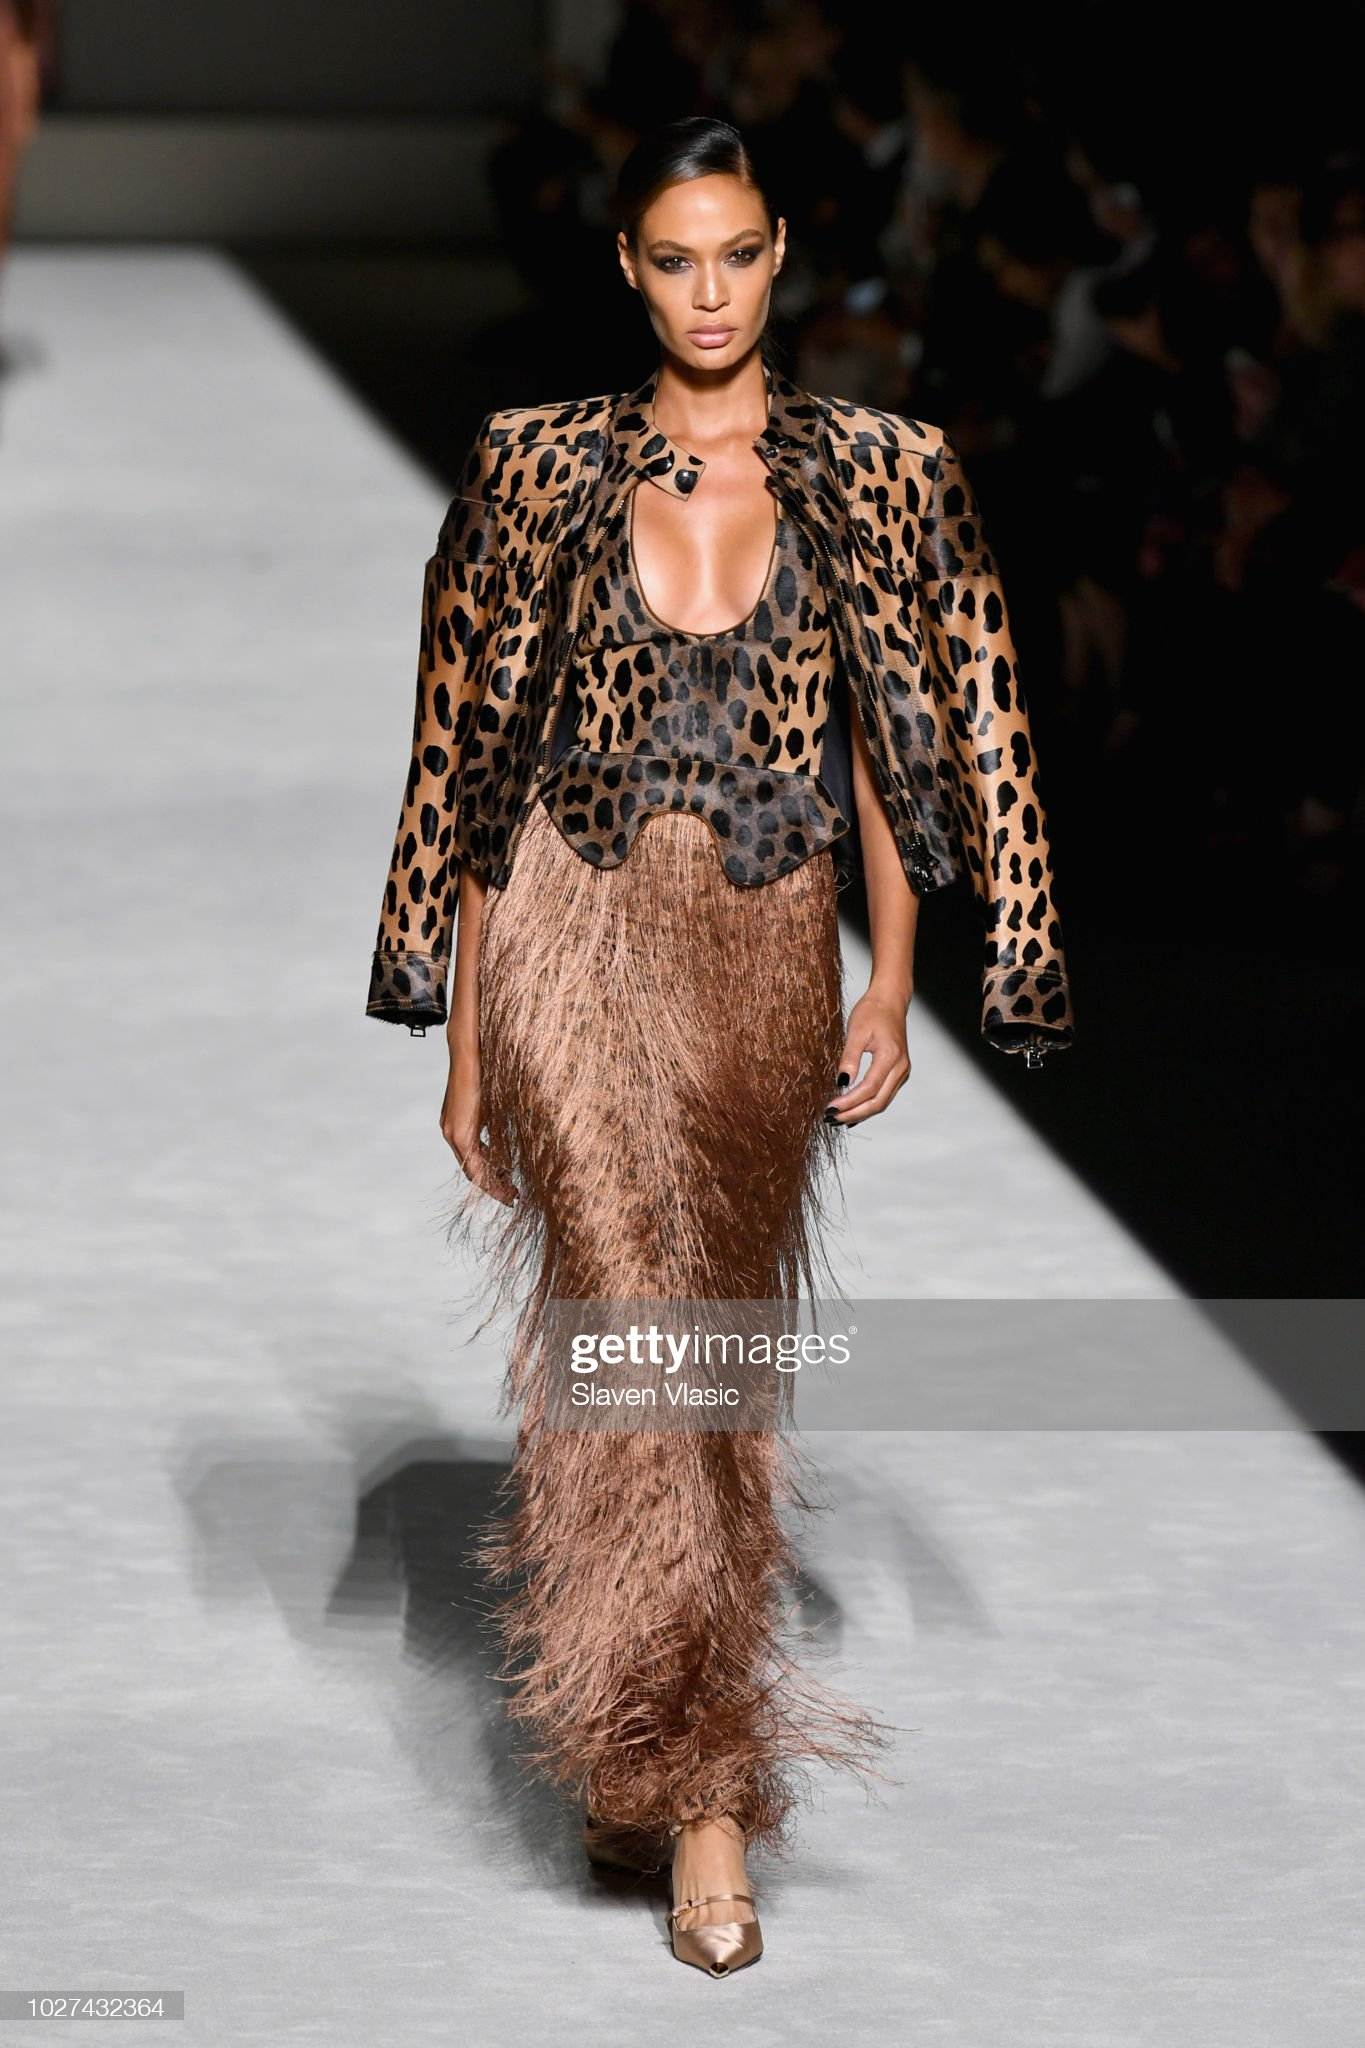 Tom Ford - Runway - September 2018 - New York Fashion Week : Foto jornalística